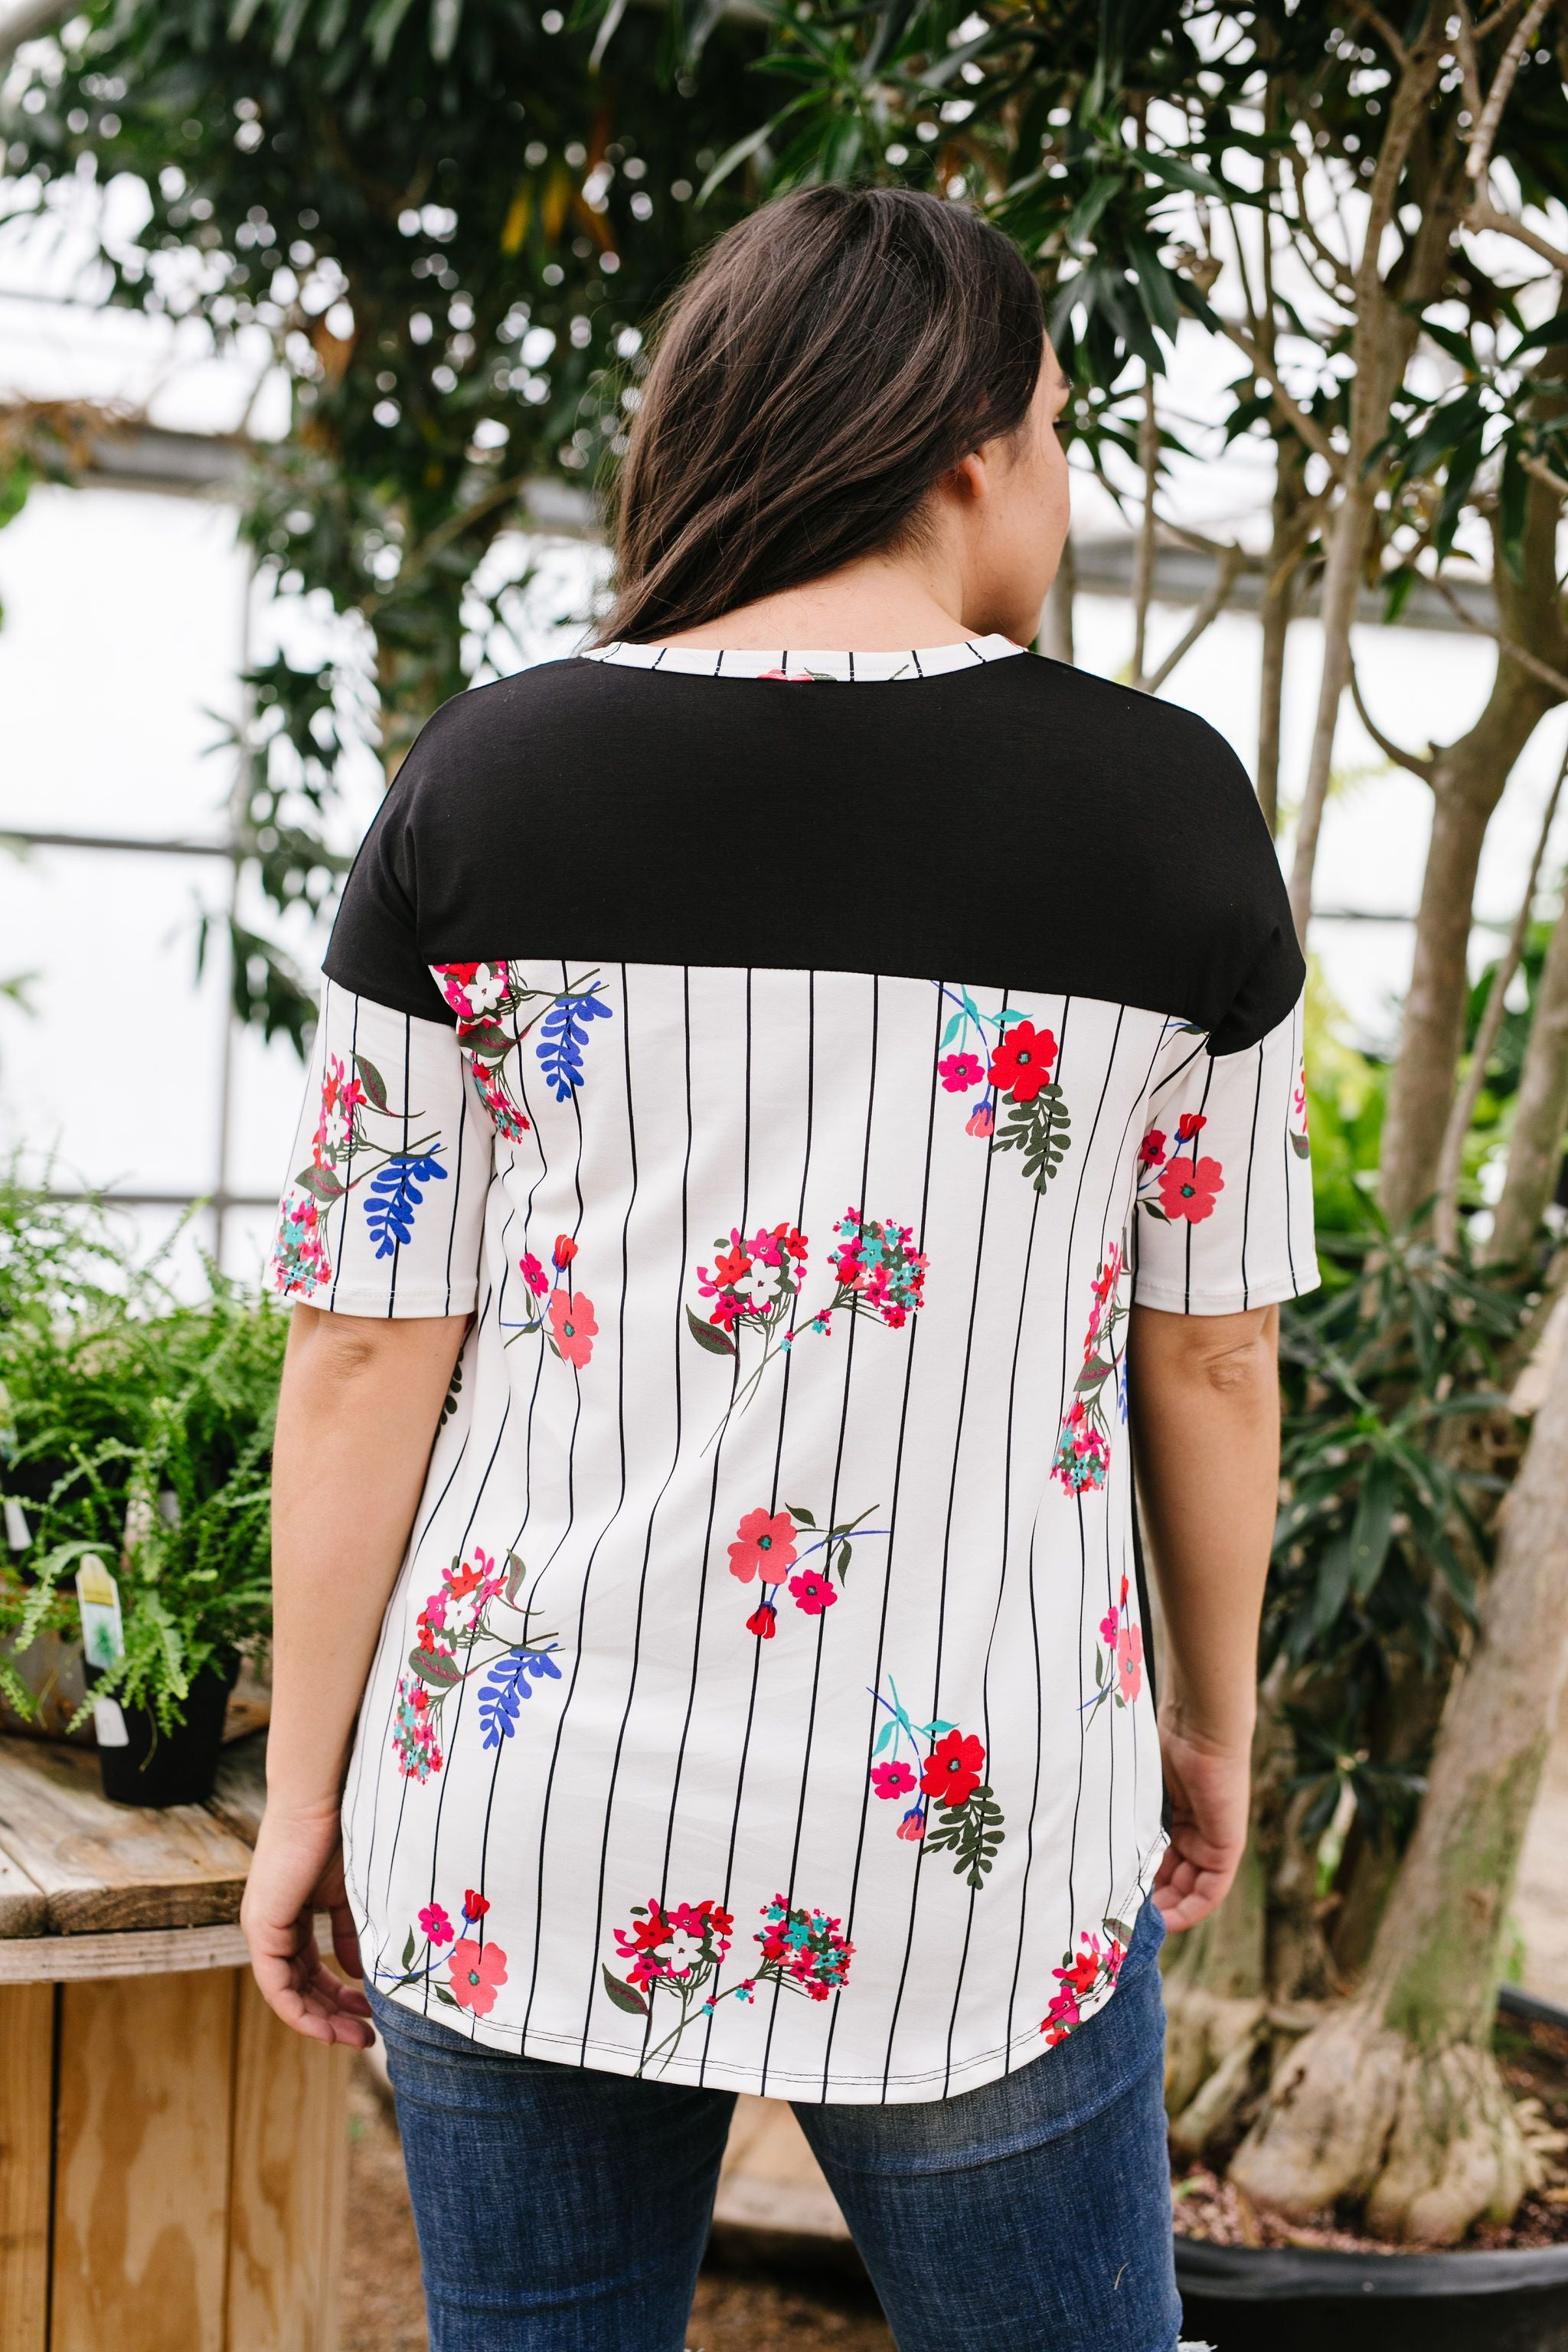 Backyard Flower Garden Top